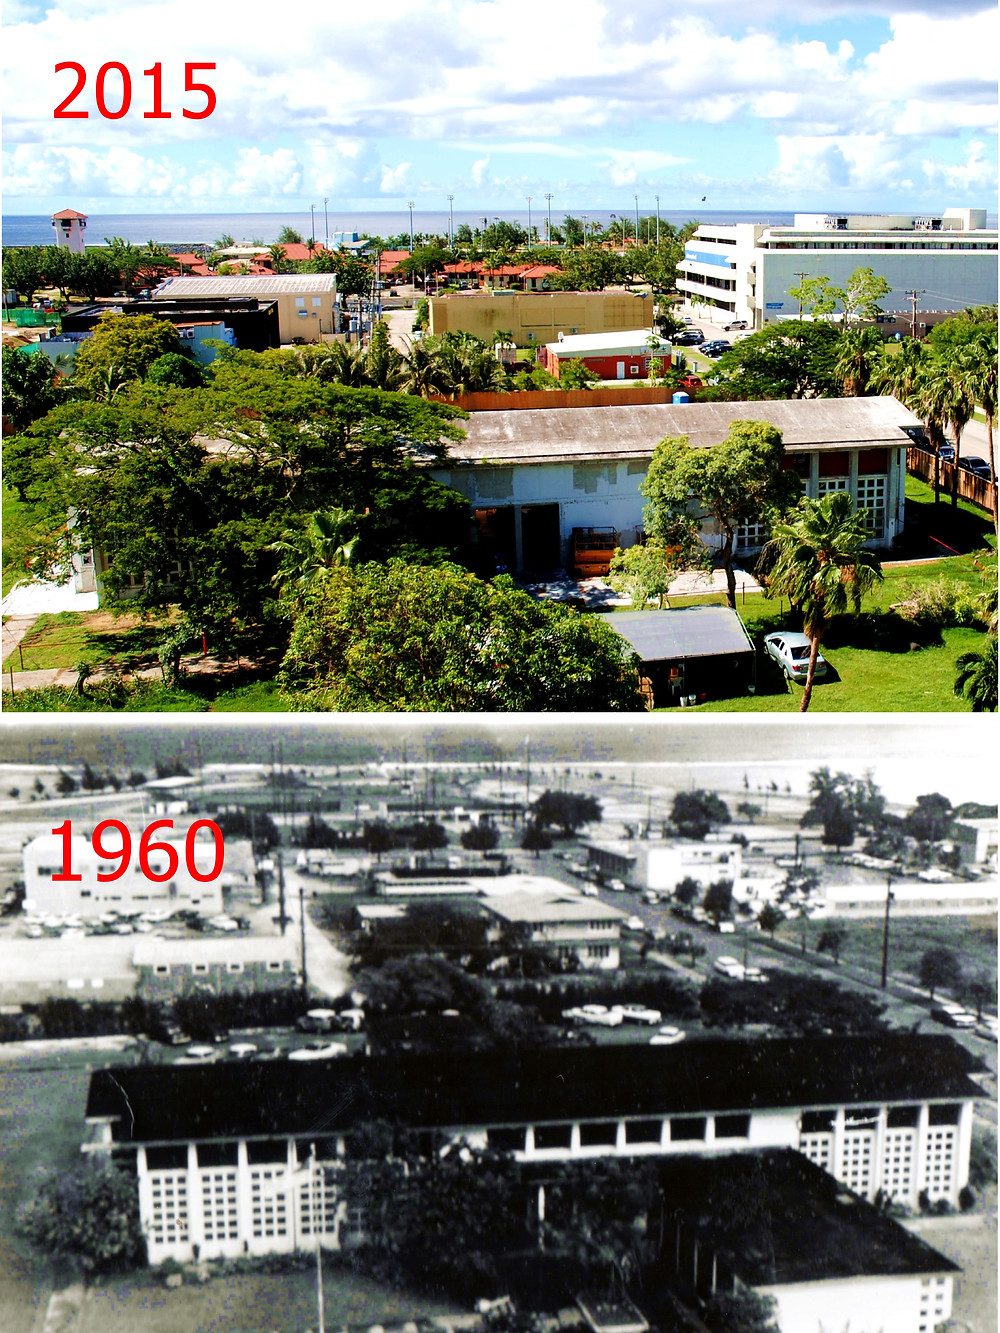 After more than 25 years, the historic Guam Congress building will reopen. Photo by Bruce Lloyd